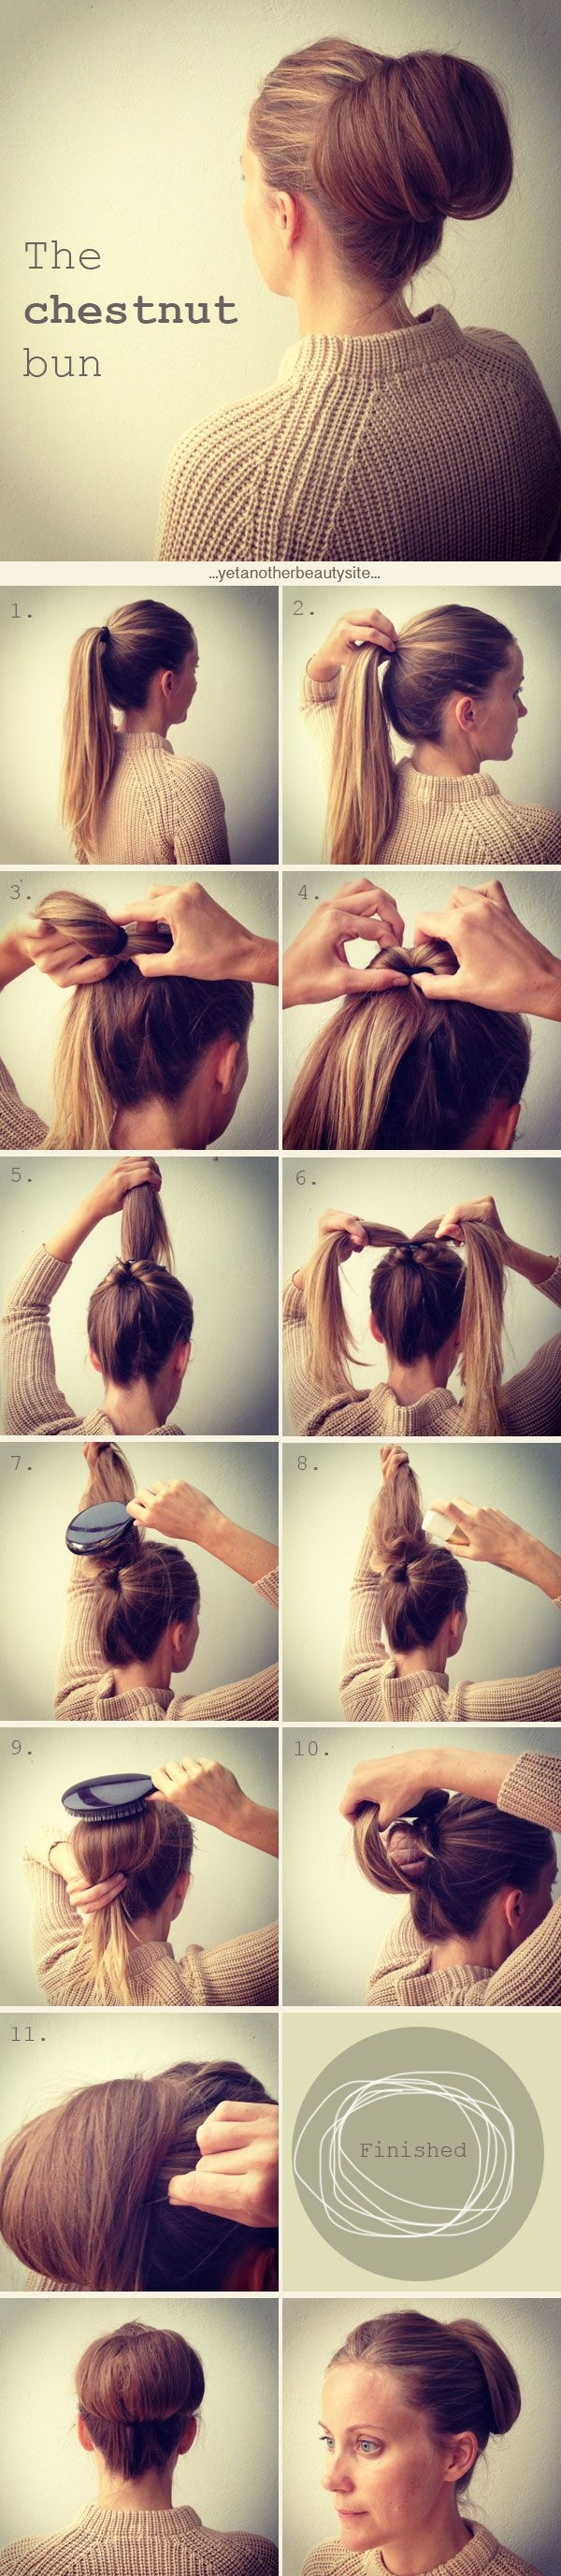 New Hairstyles for Women to try in 2016 (20)